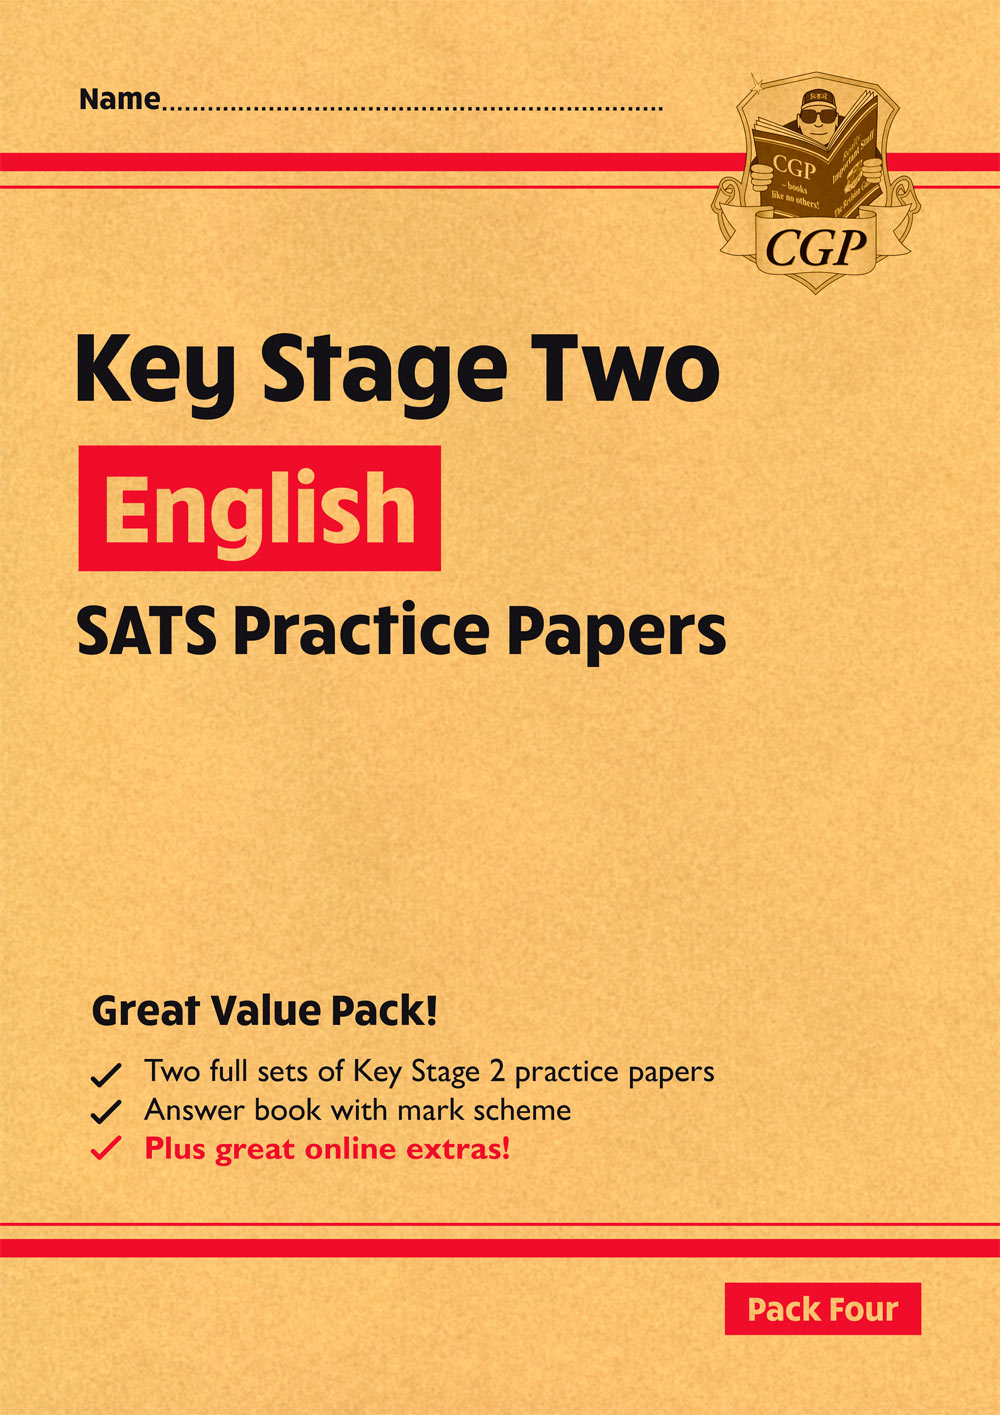 EHRP28 - New KS2 English SATS Practice Papers: Pack 4 (with free Online Extras)